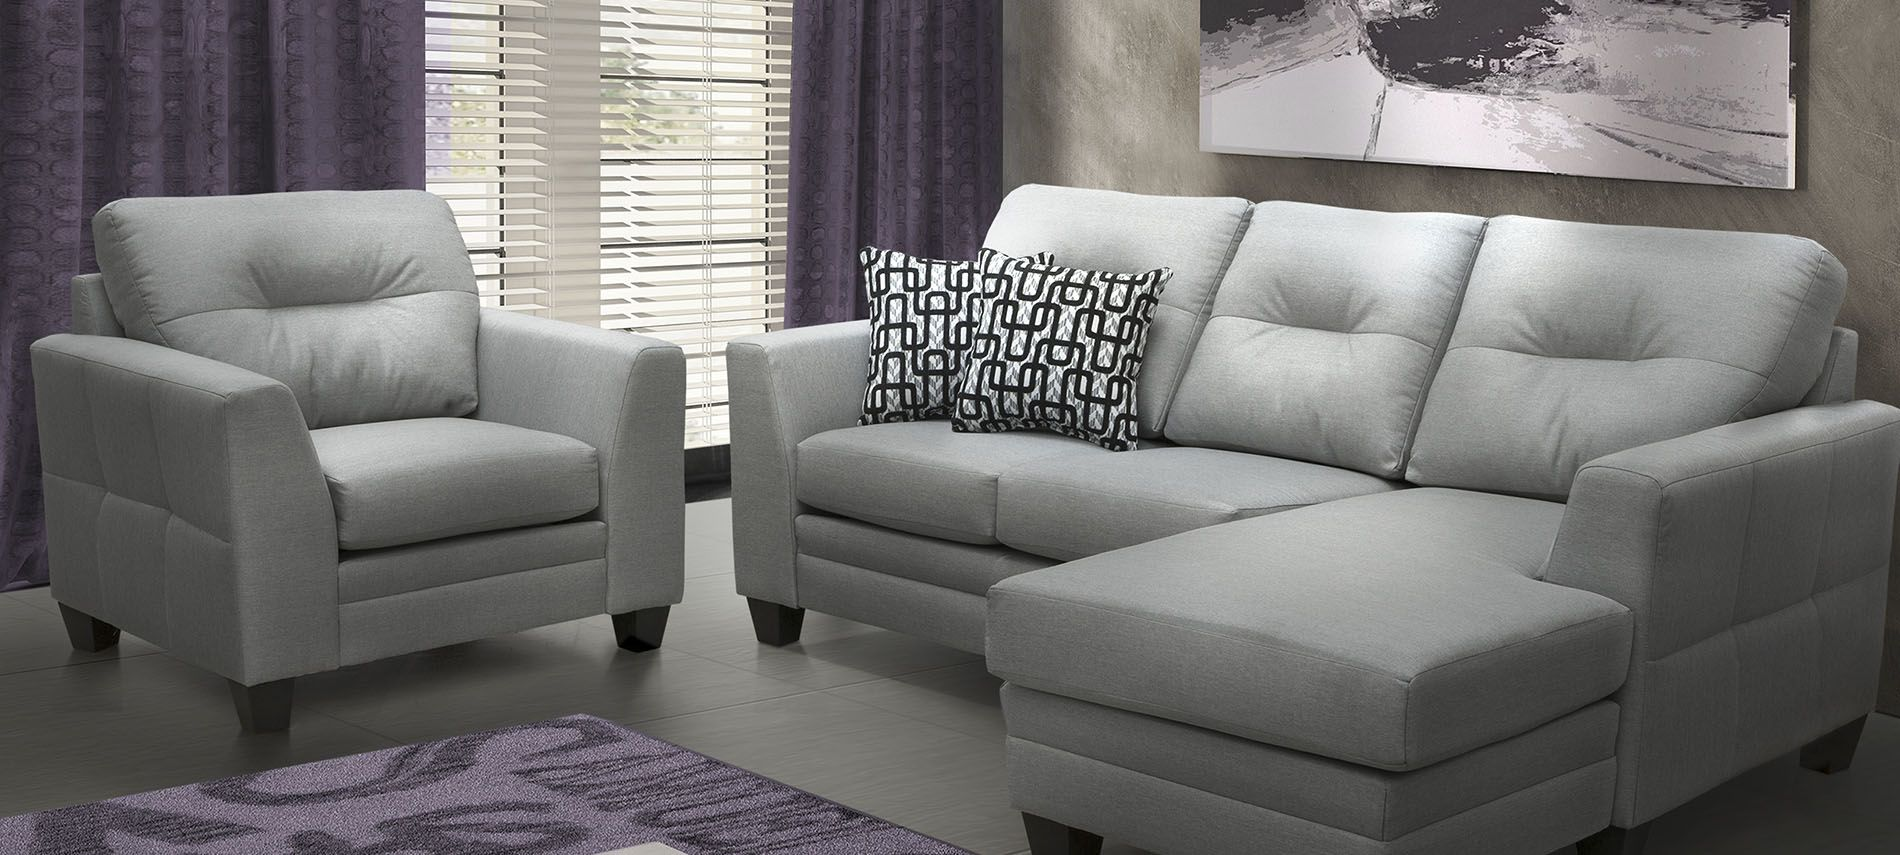 Calgary sofa collection made in canada meubles belisle for Meuble belisle sectionnel